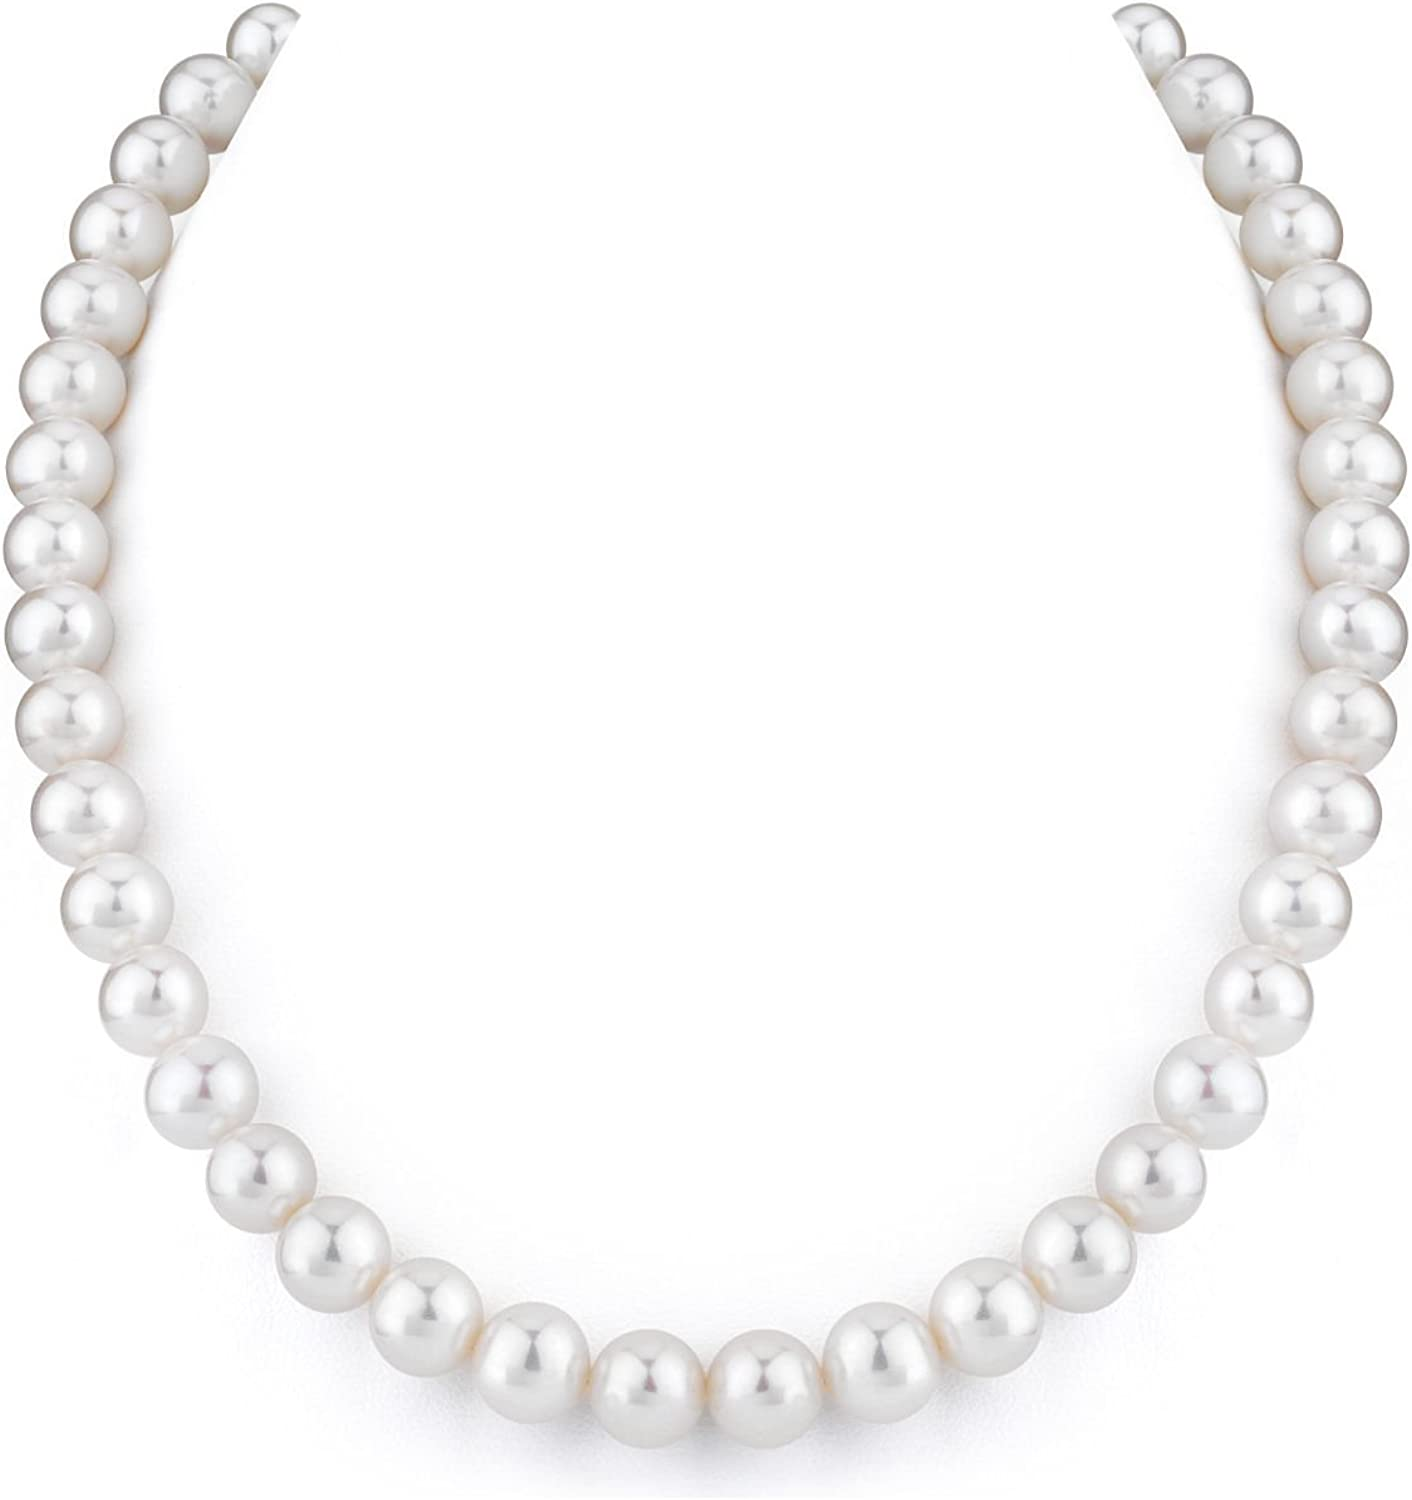 THE PEARL SOURCE 14K Gold 9-10mm AAA Quality White Freshwater Cultured Pearl Necklace for Women in 16